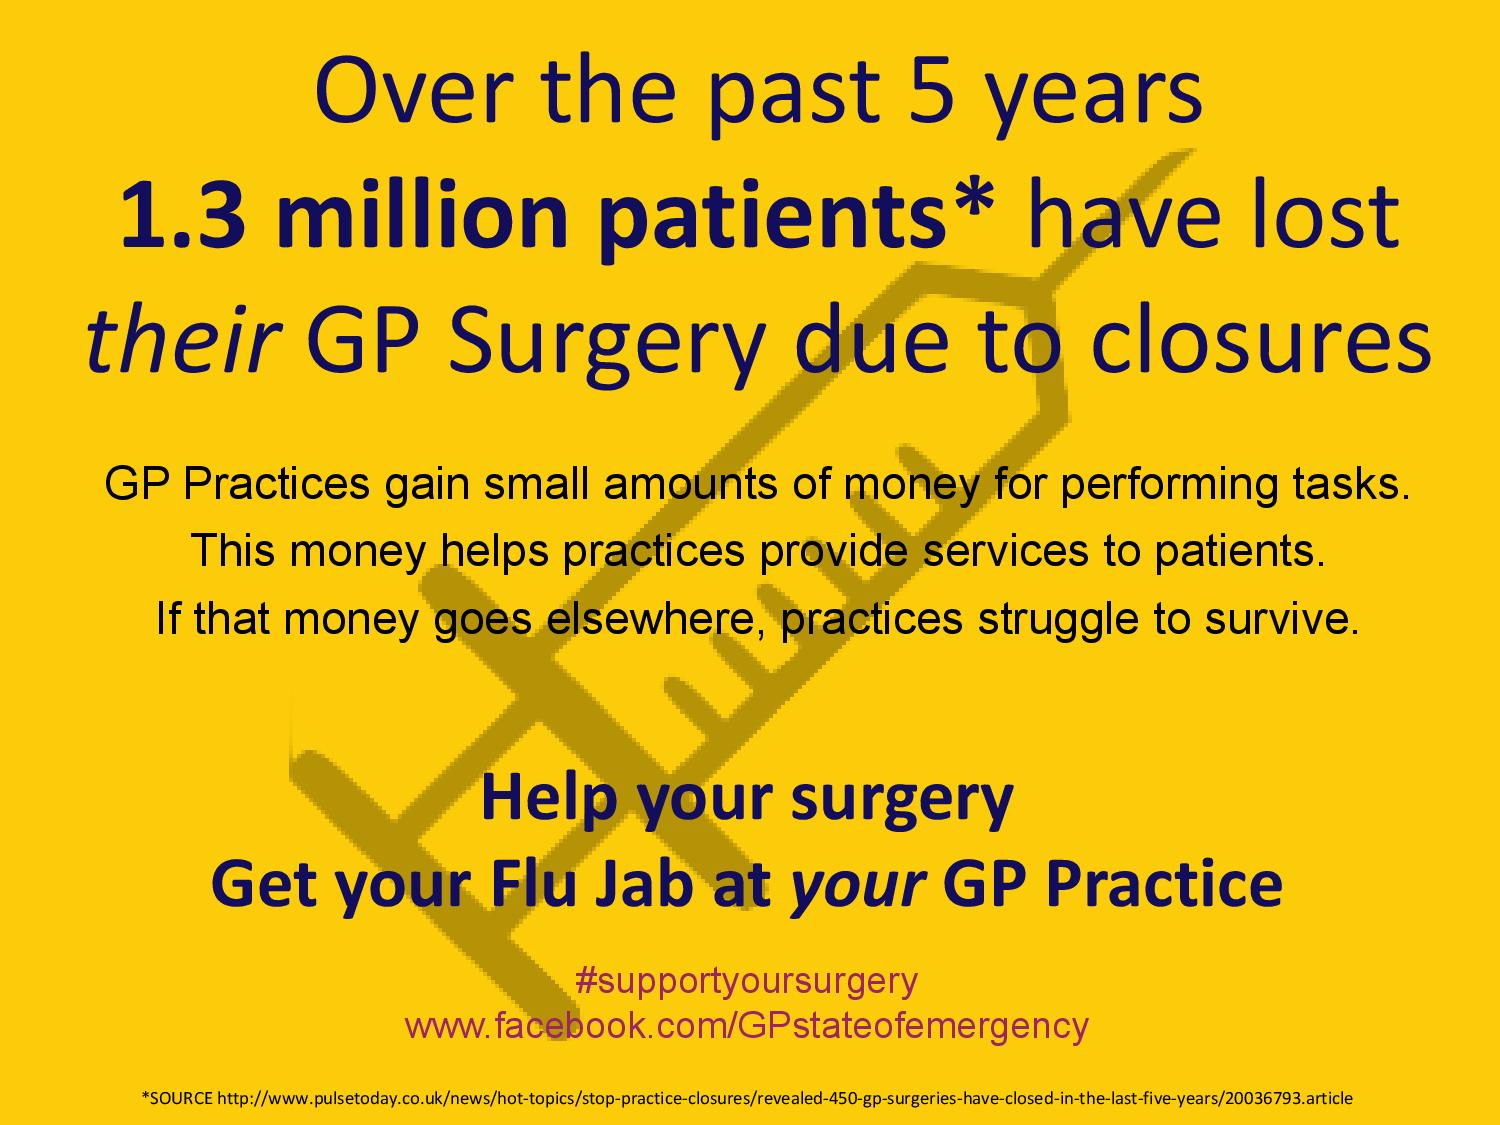 #supportyoursurgery click here to see how you can help us.